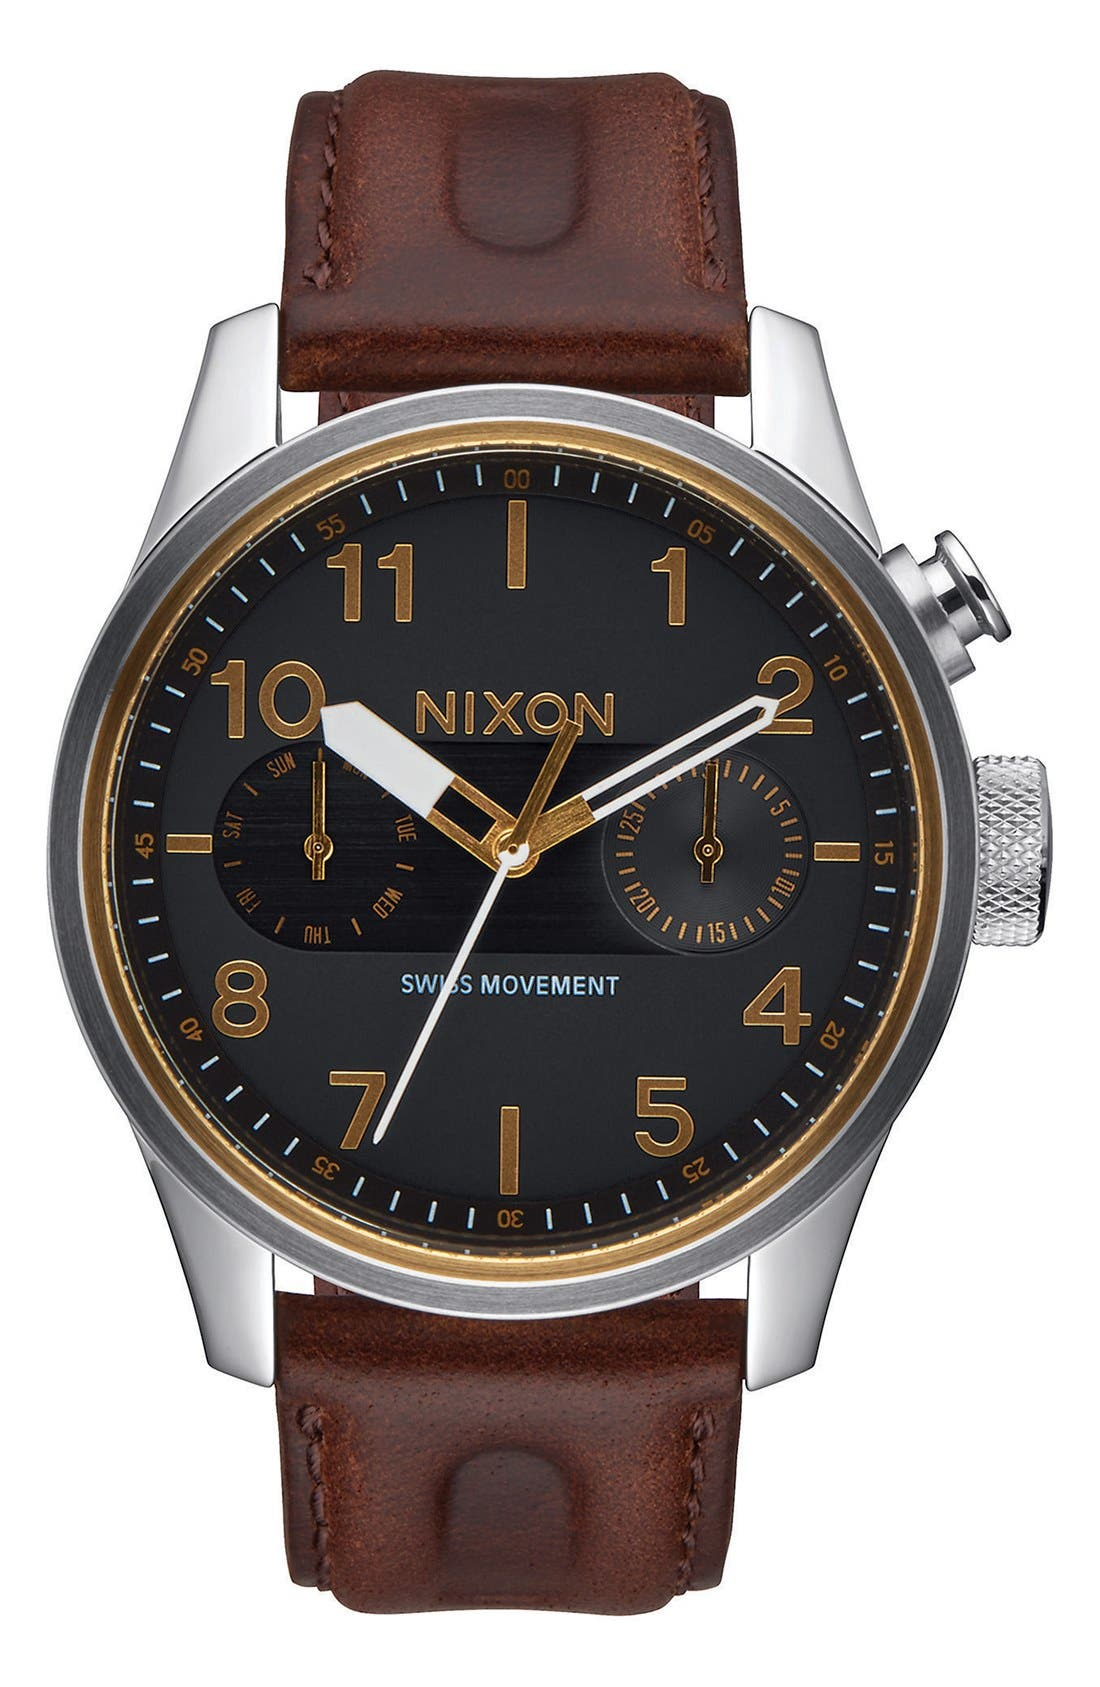 NIXON Safari Deluxe Leather Strap Watch, 43mm